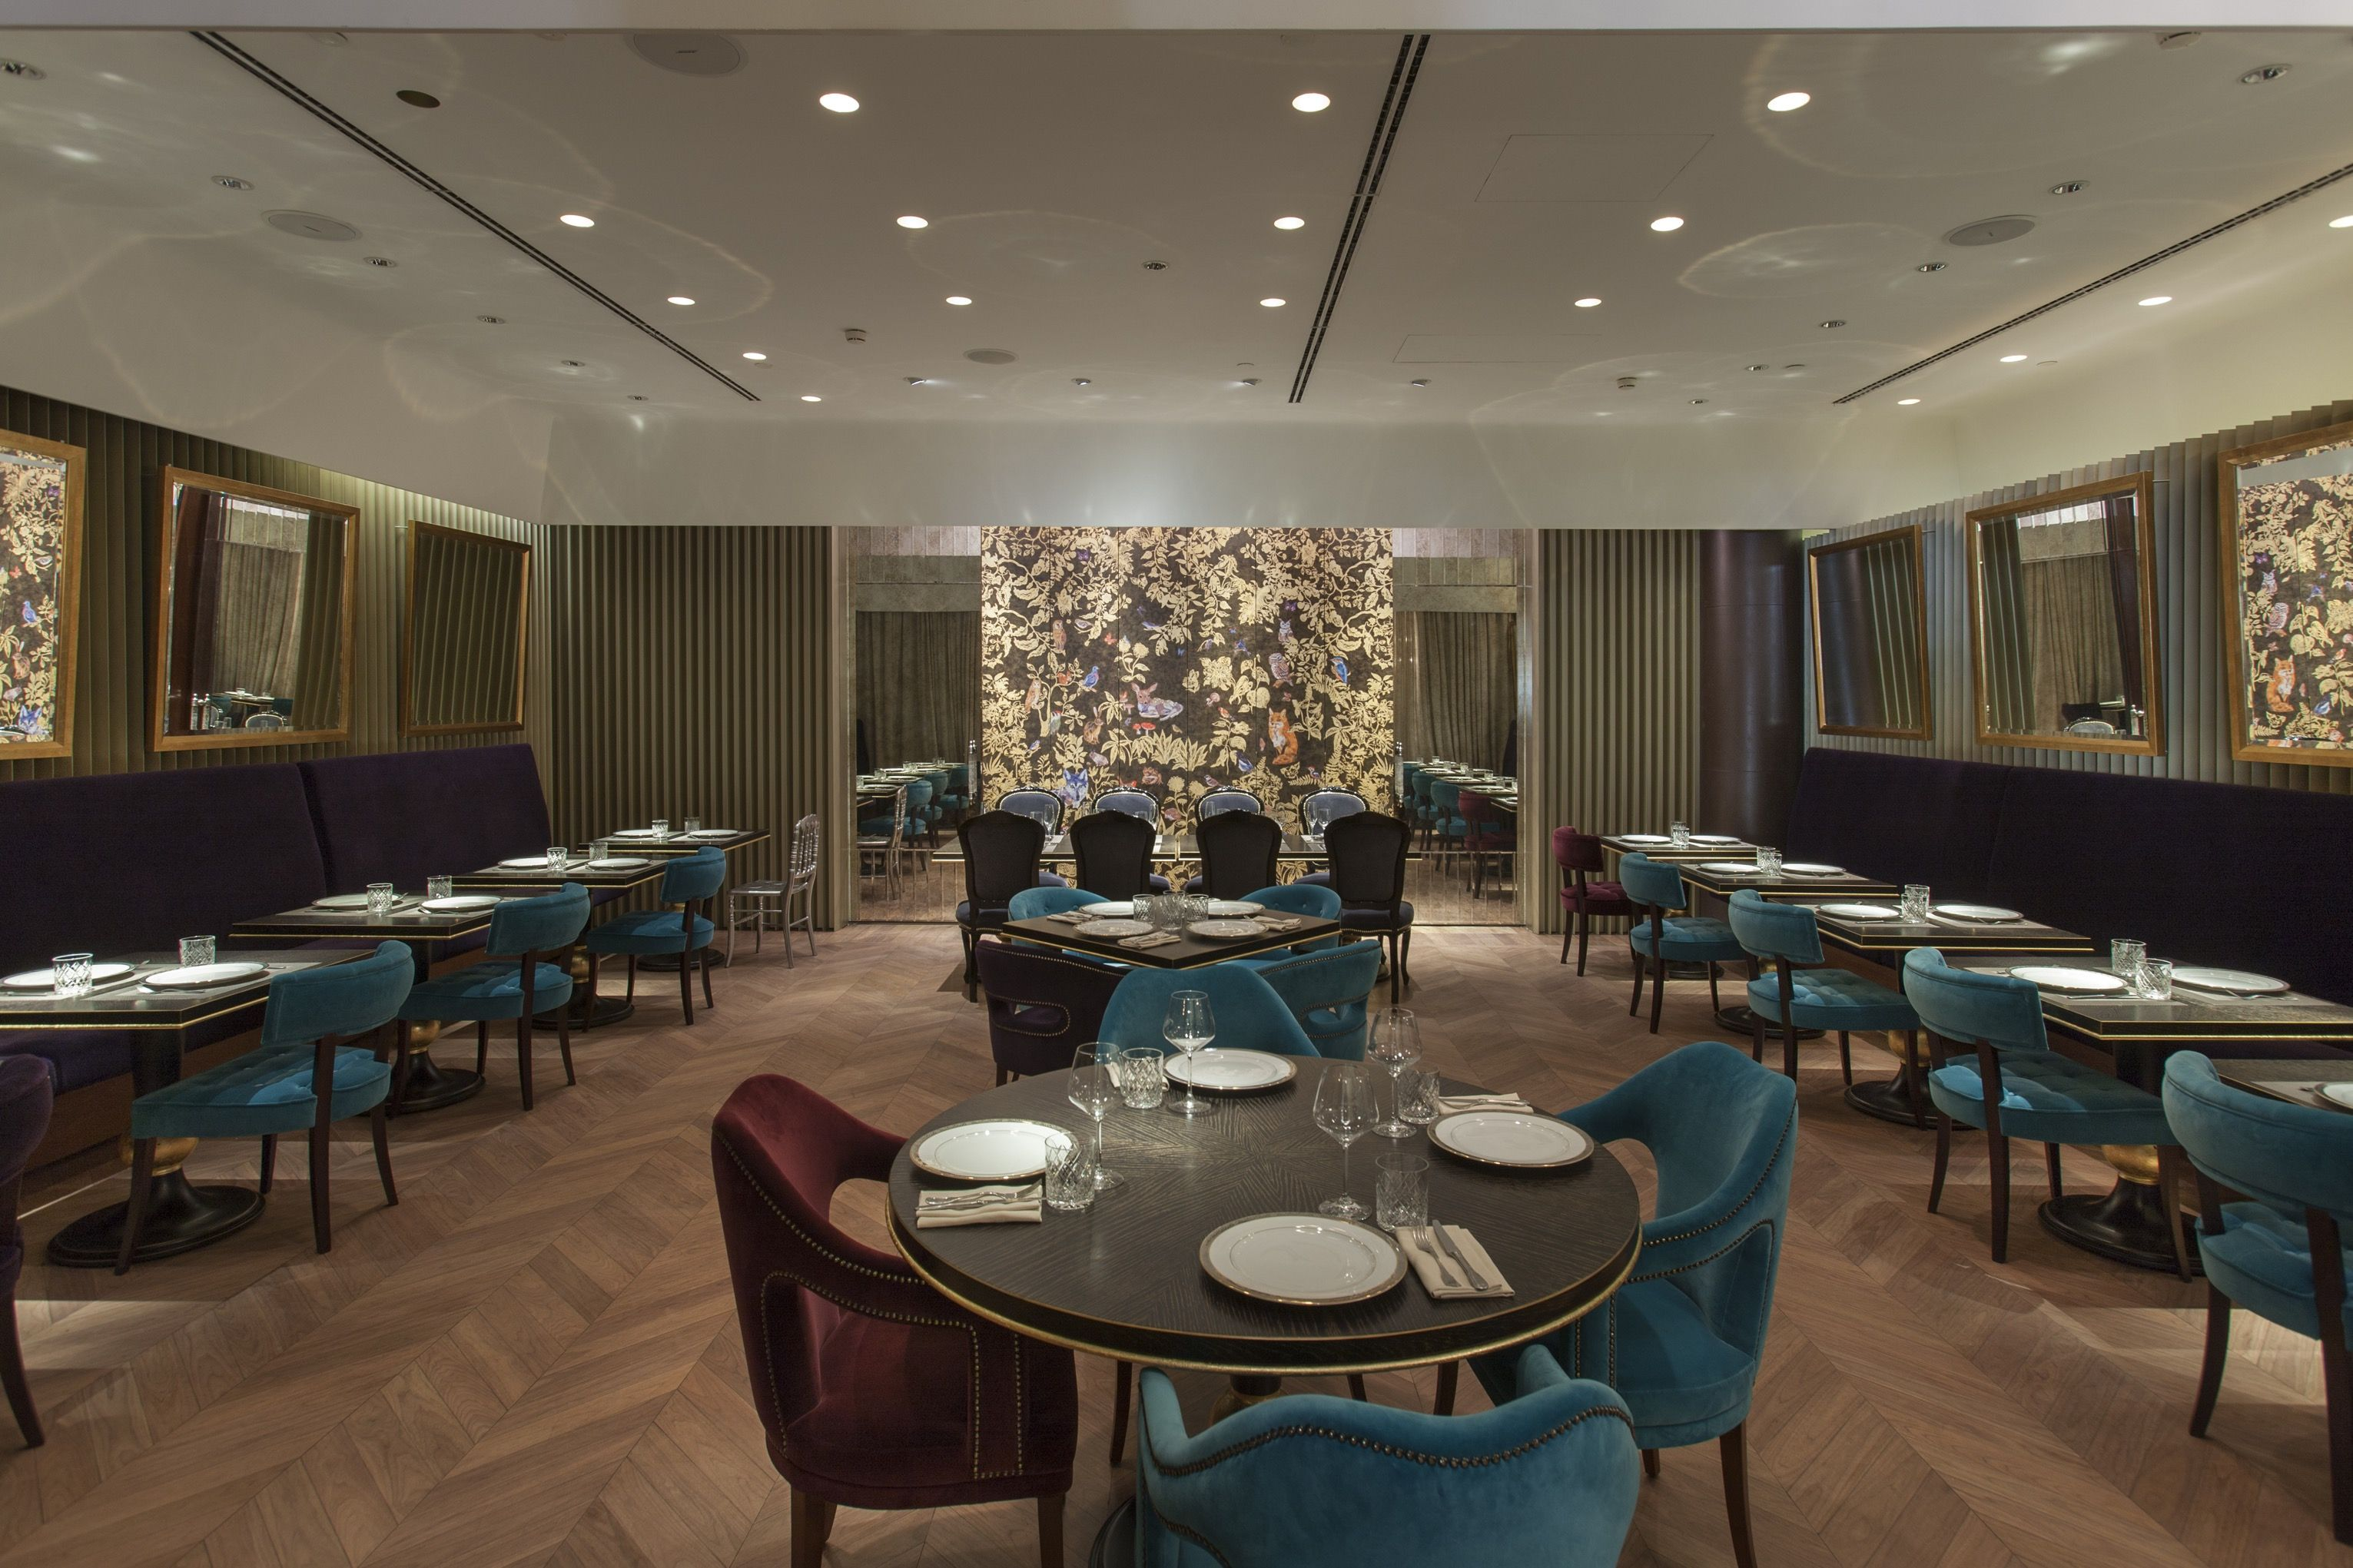 avalon by lobby furniture hotel interior hospitality wearstler trends real estate design luxury the kelly pin